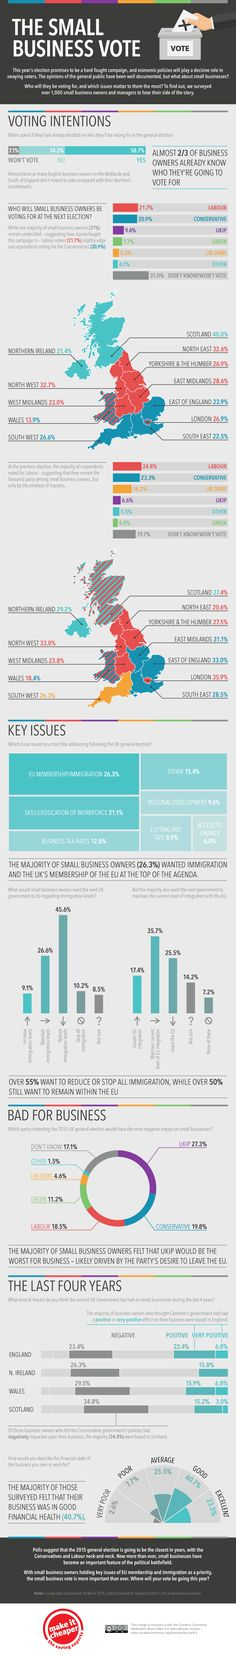 General Election 2015: The Small Business Vote #infographic #Election #SmallBusiness